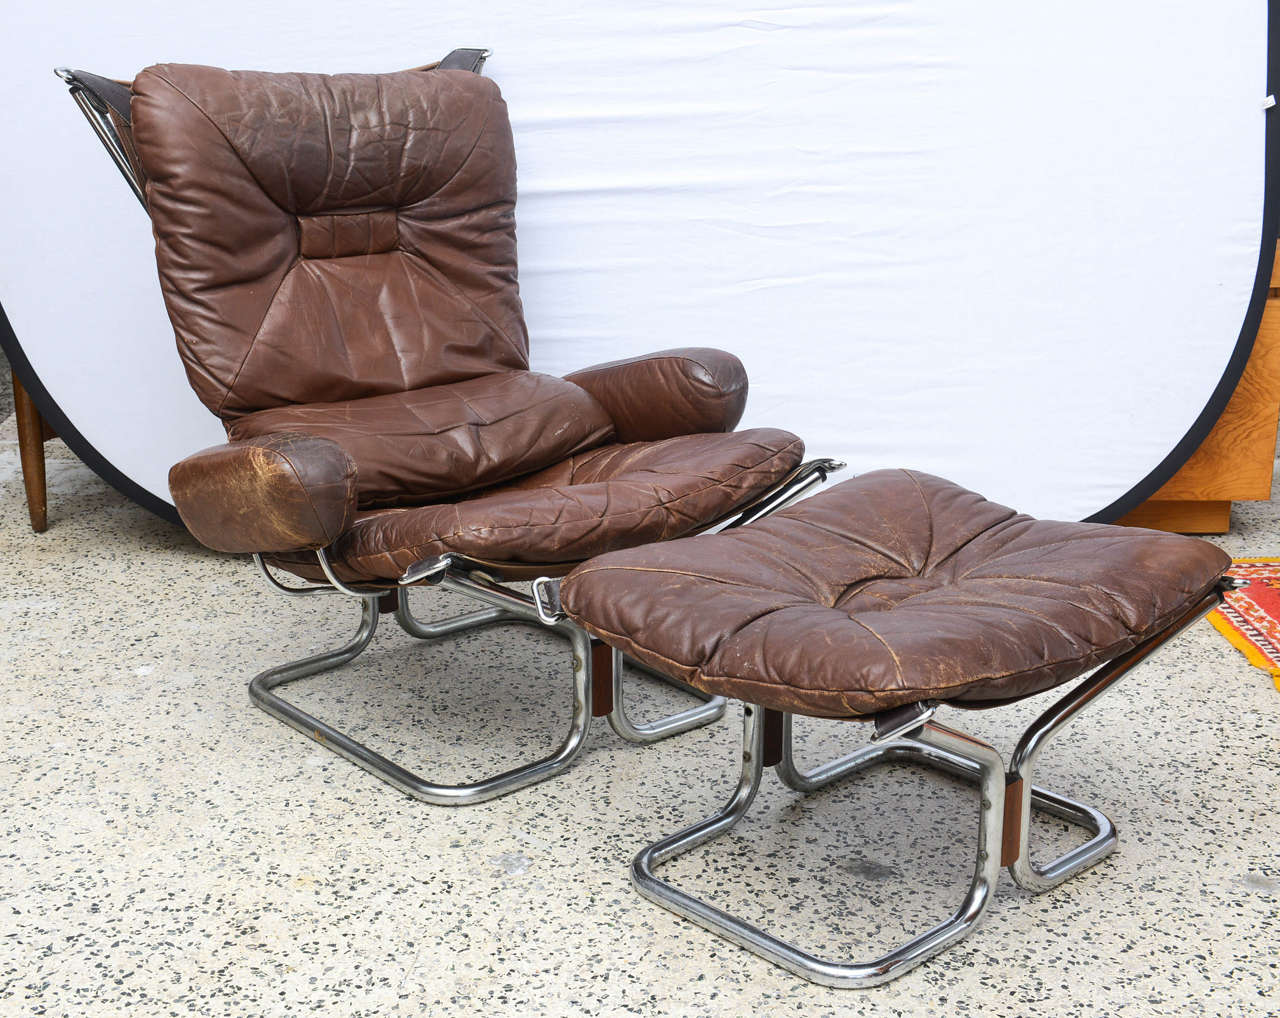 Stupendous Ingmar Relling For Westnofa Chrome And Leather Chair And Ottoman Norway 1970S Pabps2019 Chair Design Images Pabps2019Com